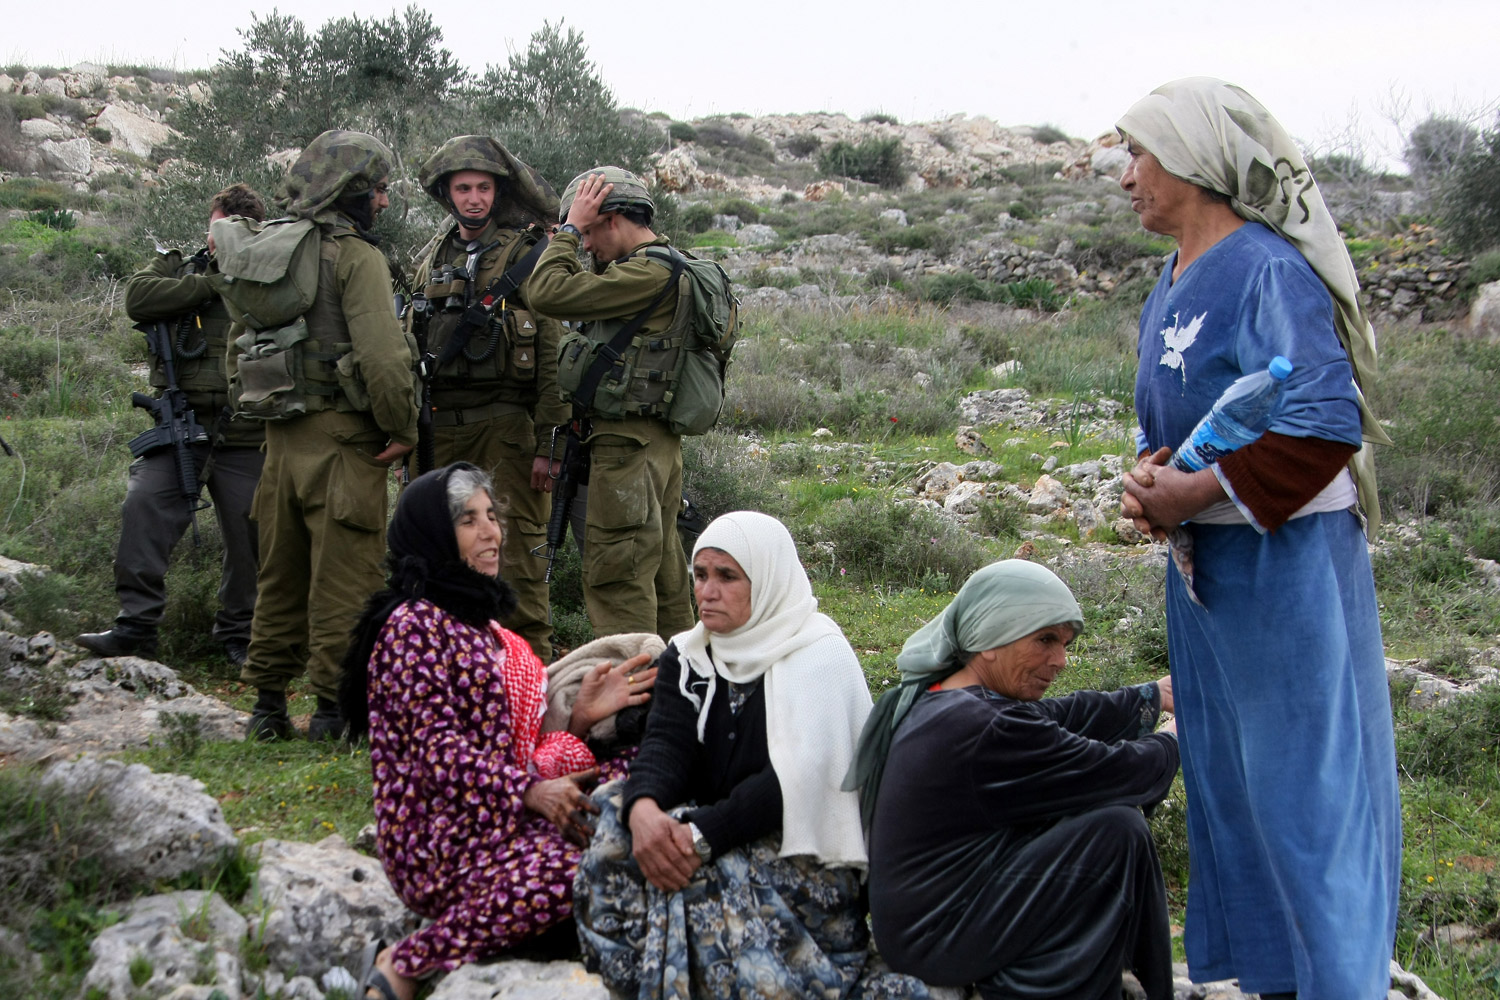 February 6, 2012. Israeli soldiers stand guard as Palestinian women gather while Jewish settlers from the settlement of Kedumim plough in the West Bank.